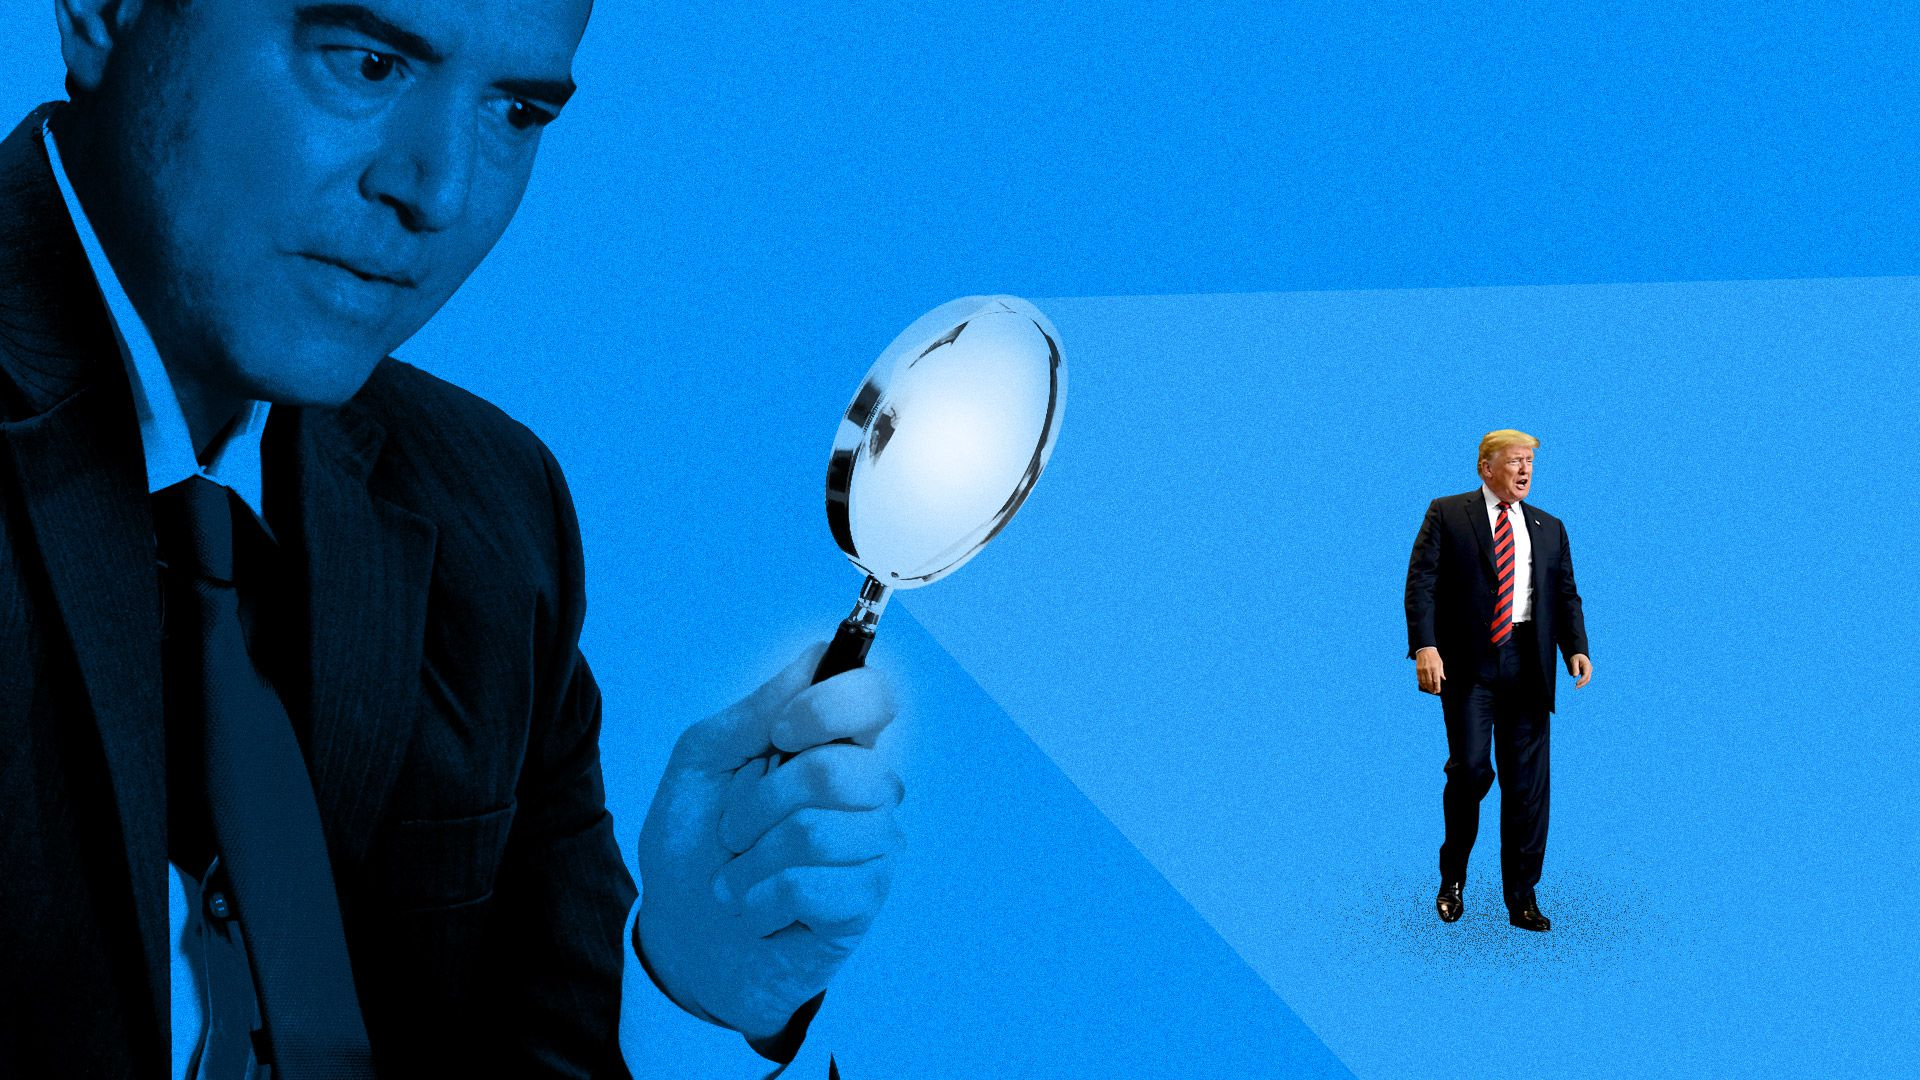 Representative Adam Schiff looming over Donald Trump with a magnifying glass